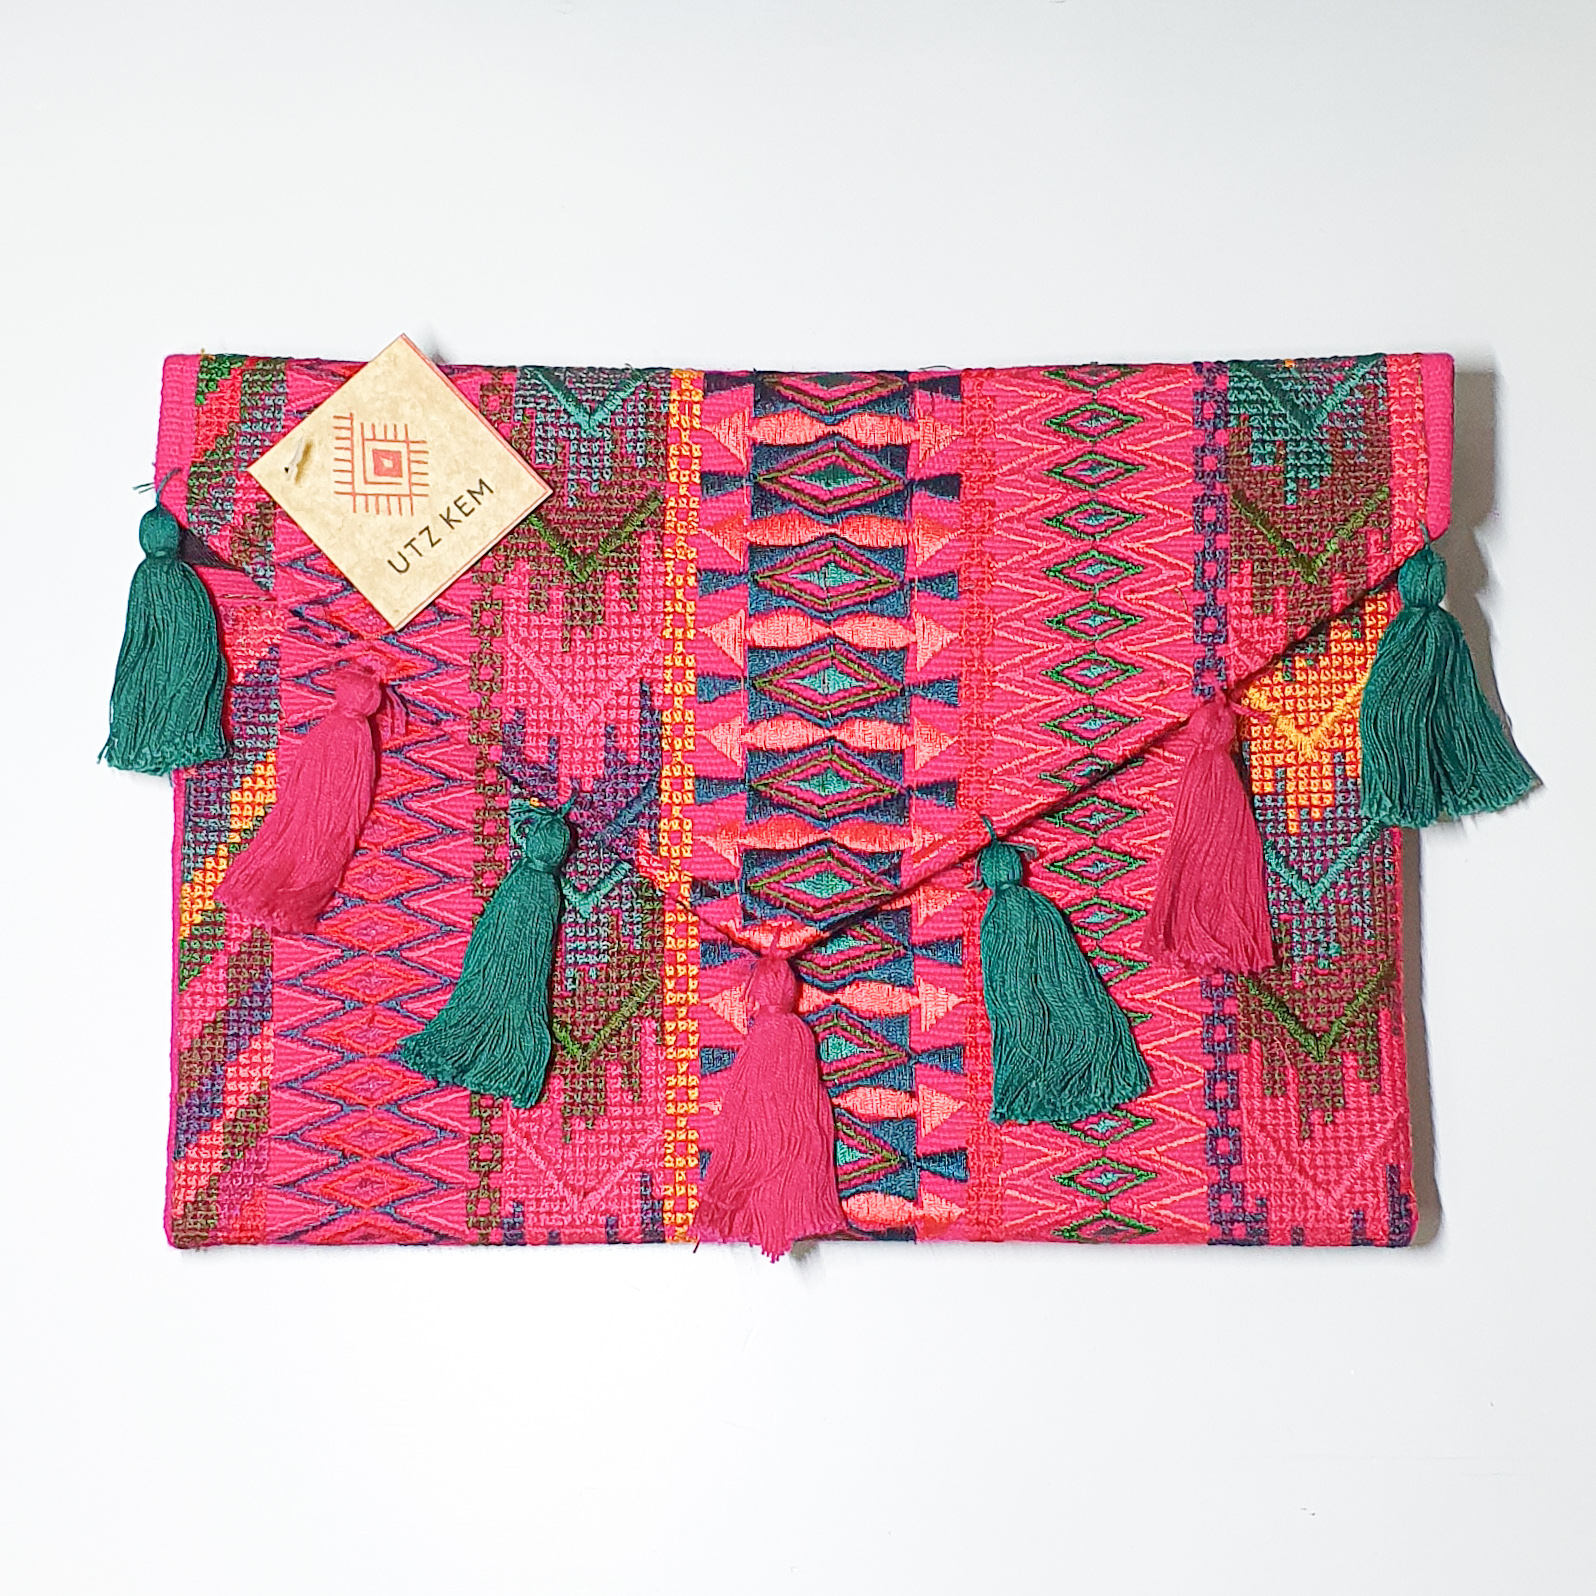 Embroidered Clutch by Utz Kem   Inspire Me Latin America